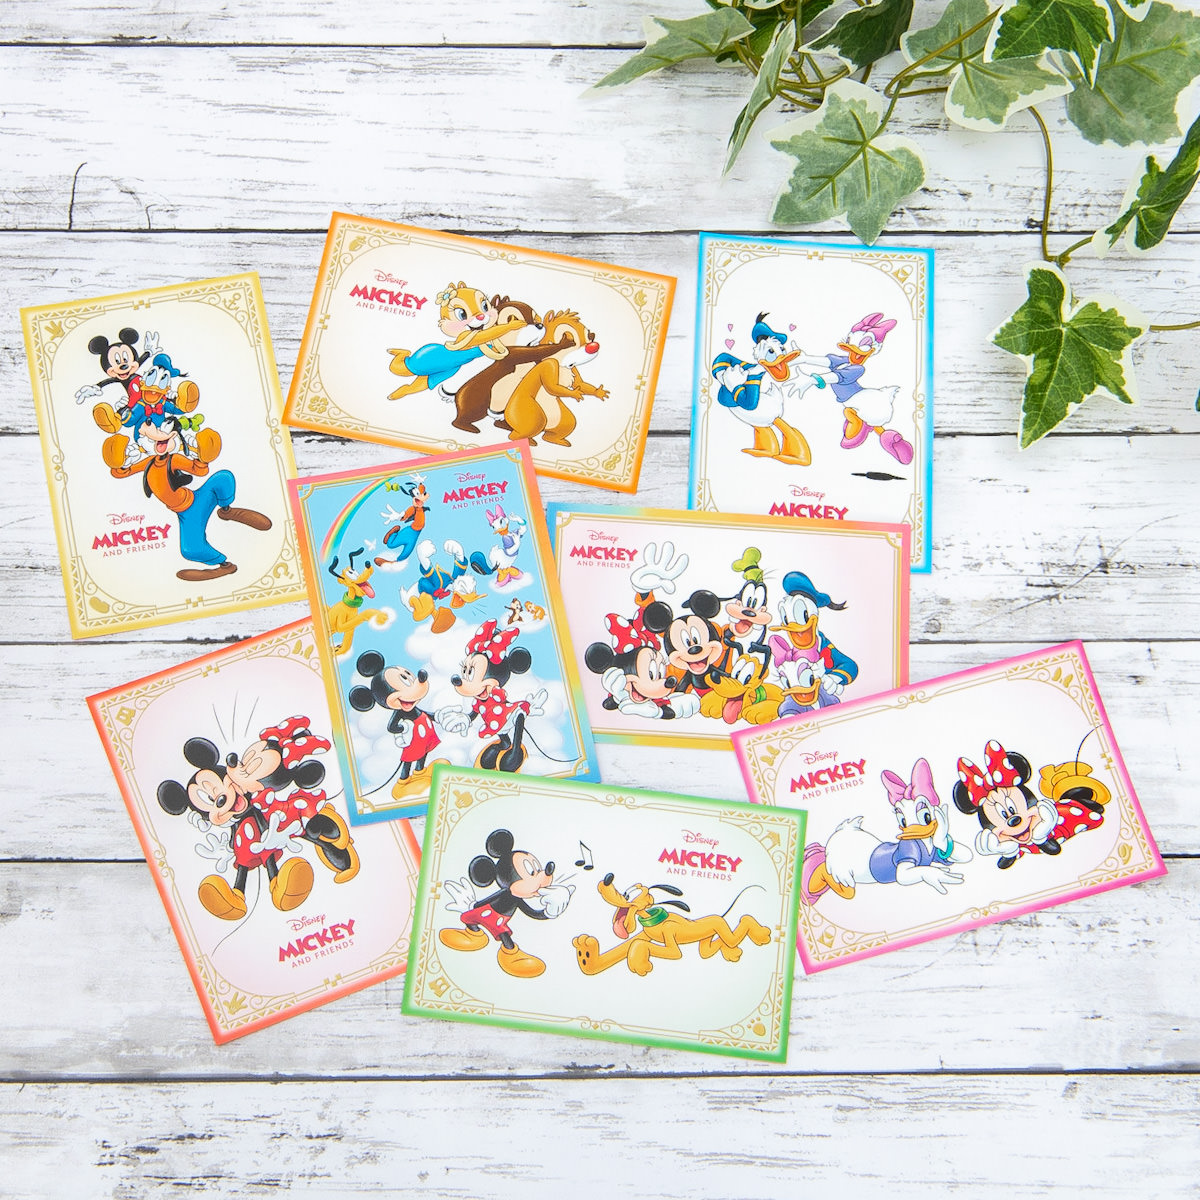 Disney SWEETS COLLECTION by 東京ばな奈『ミッキー&フレンズ/東京ばな奈「⾒ぃつけたっ」』イメージ4